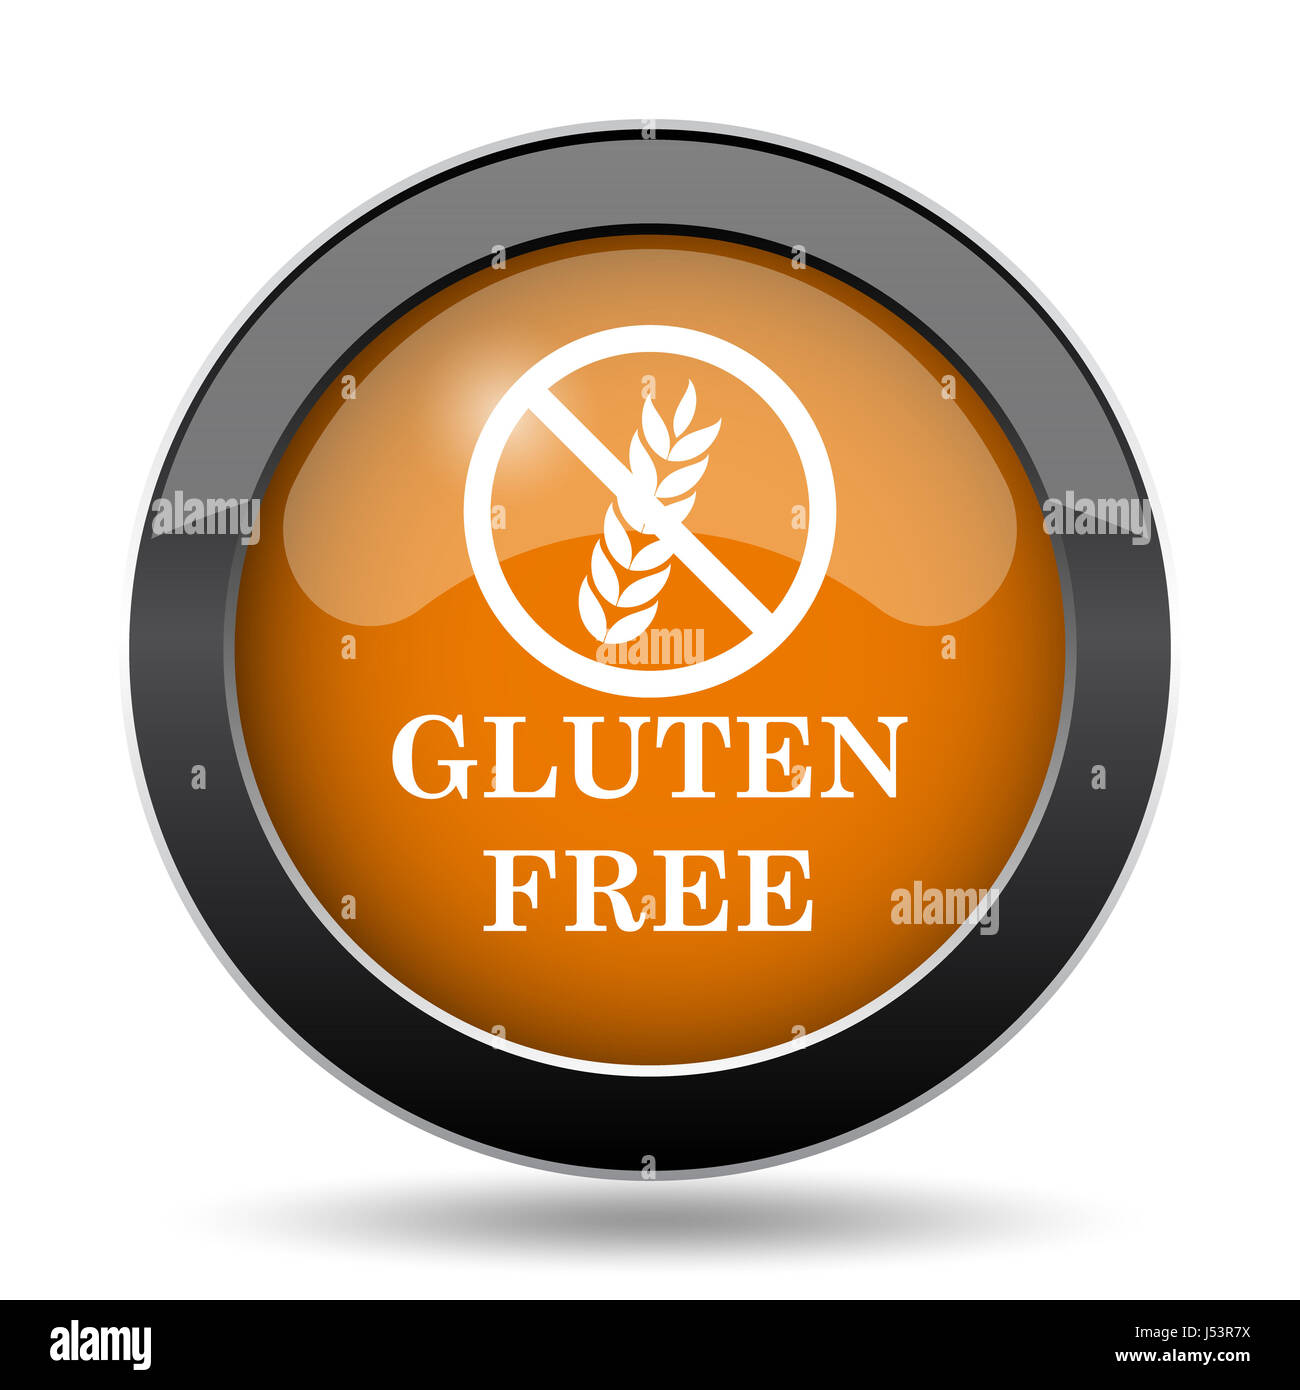 Gluten free icon  Gluten free website button on white